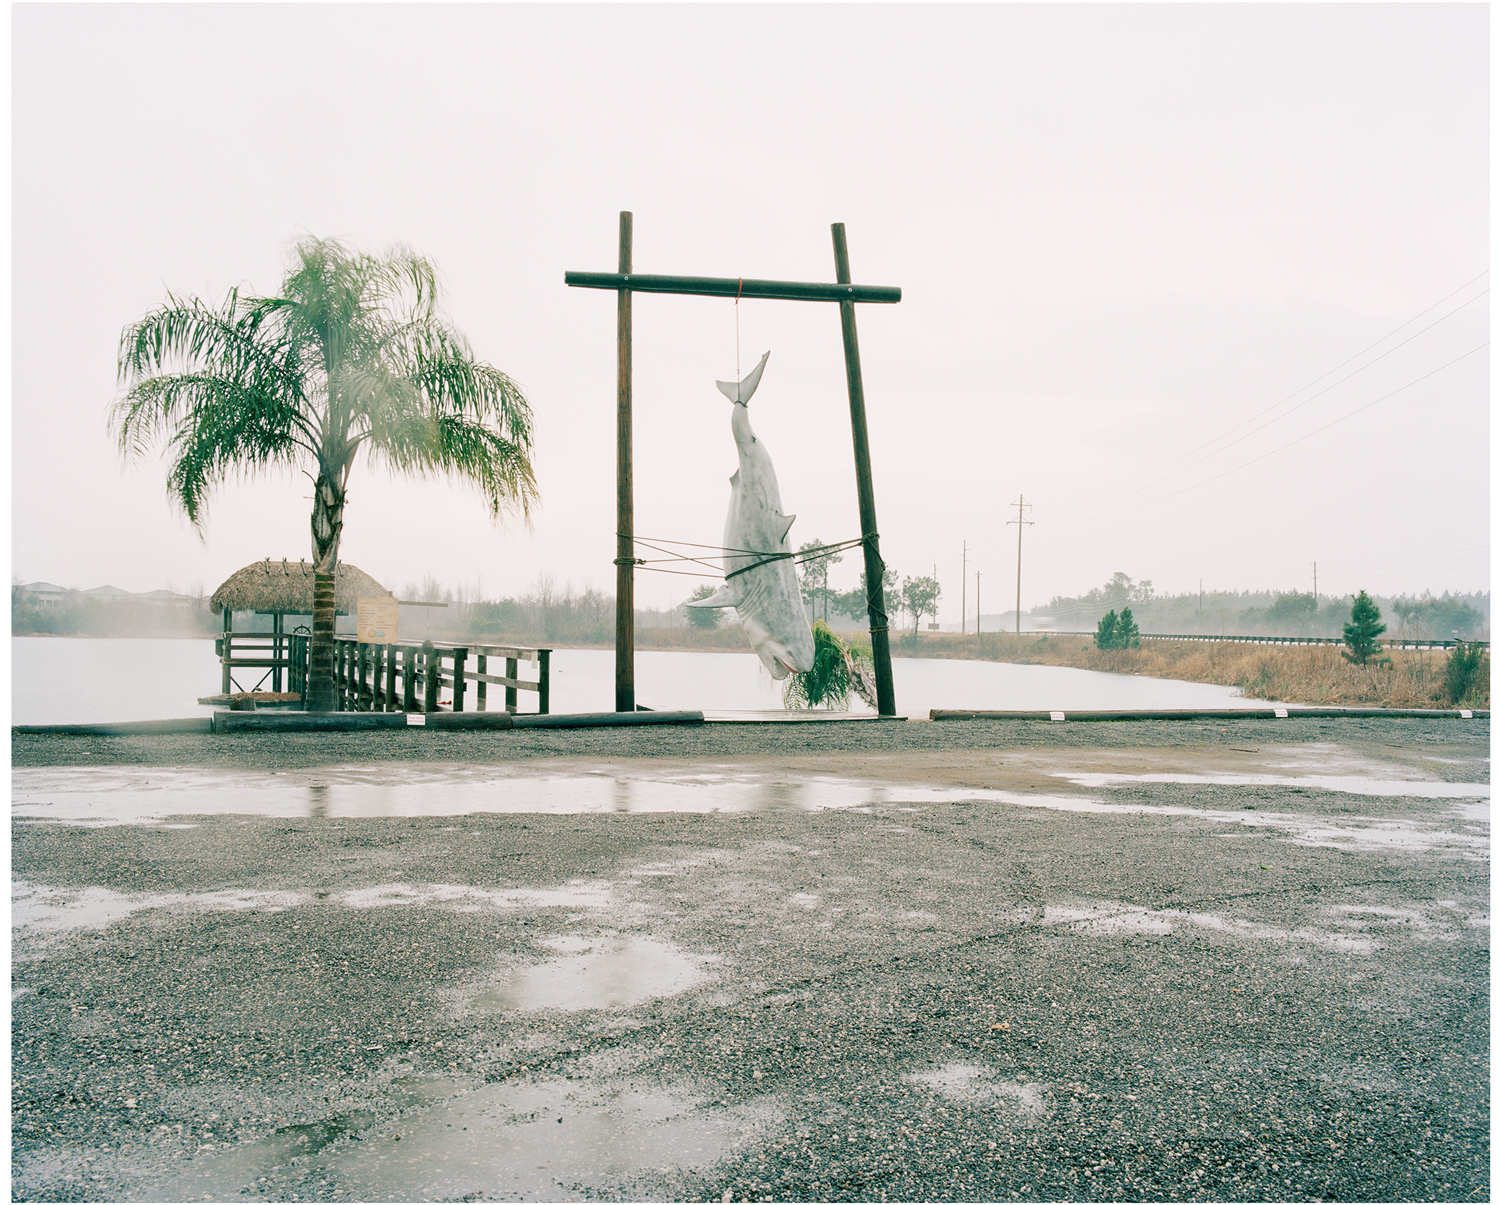 Shark, Highway 27, Florida, 2011